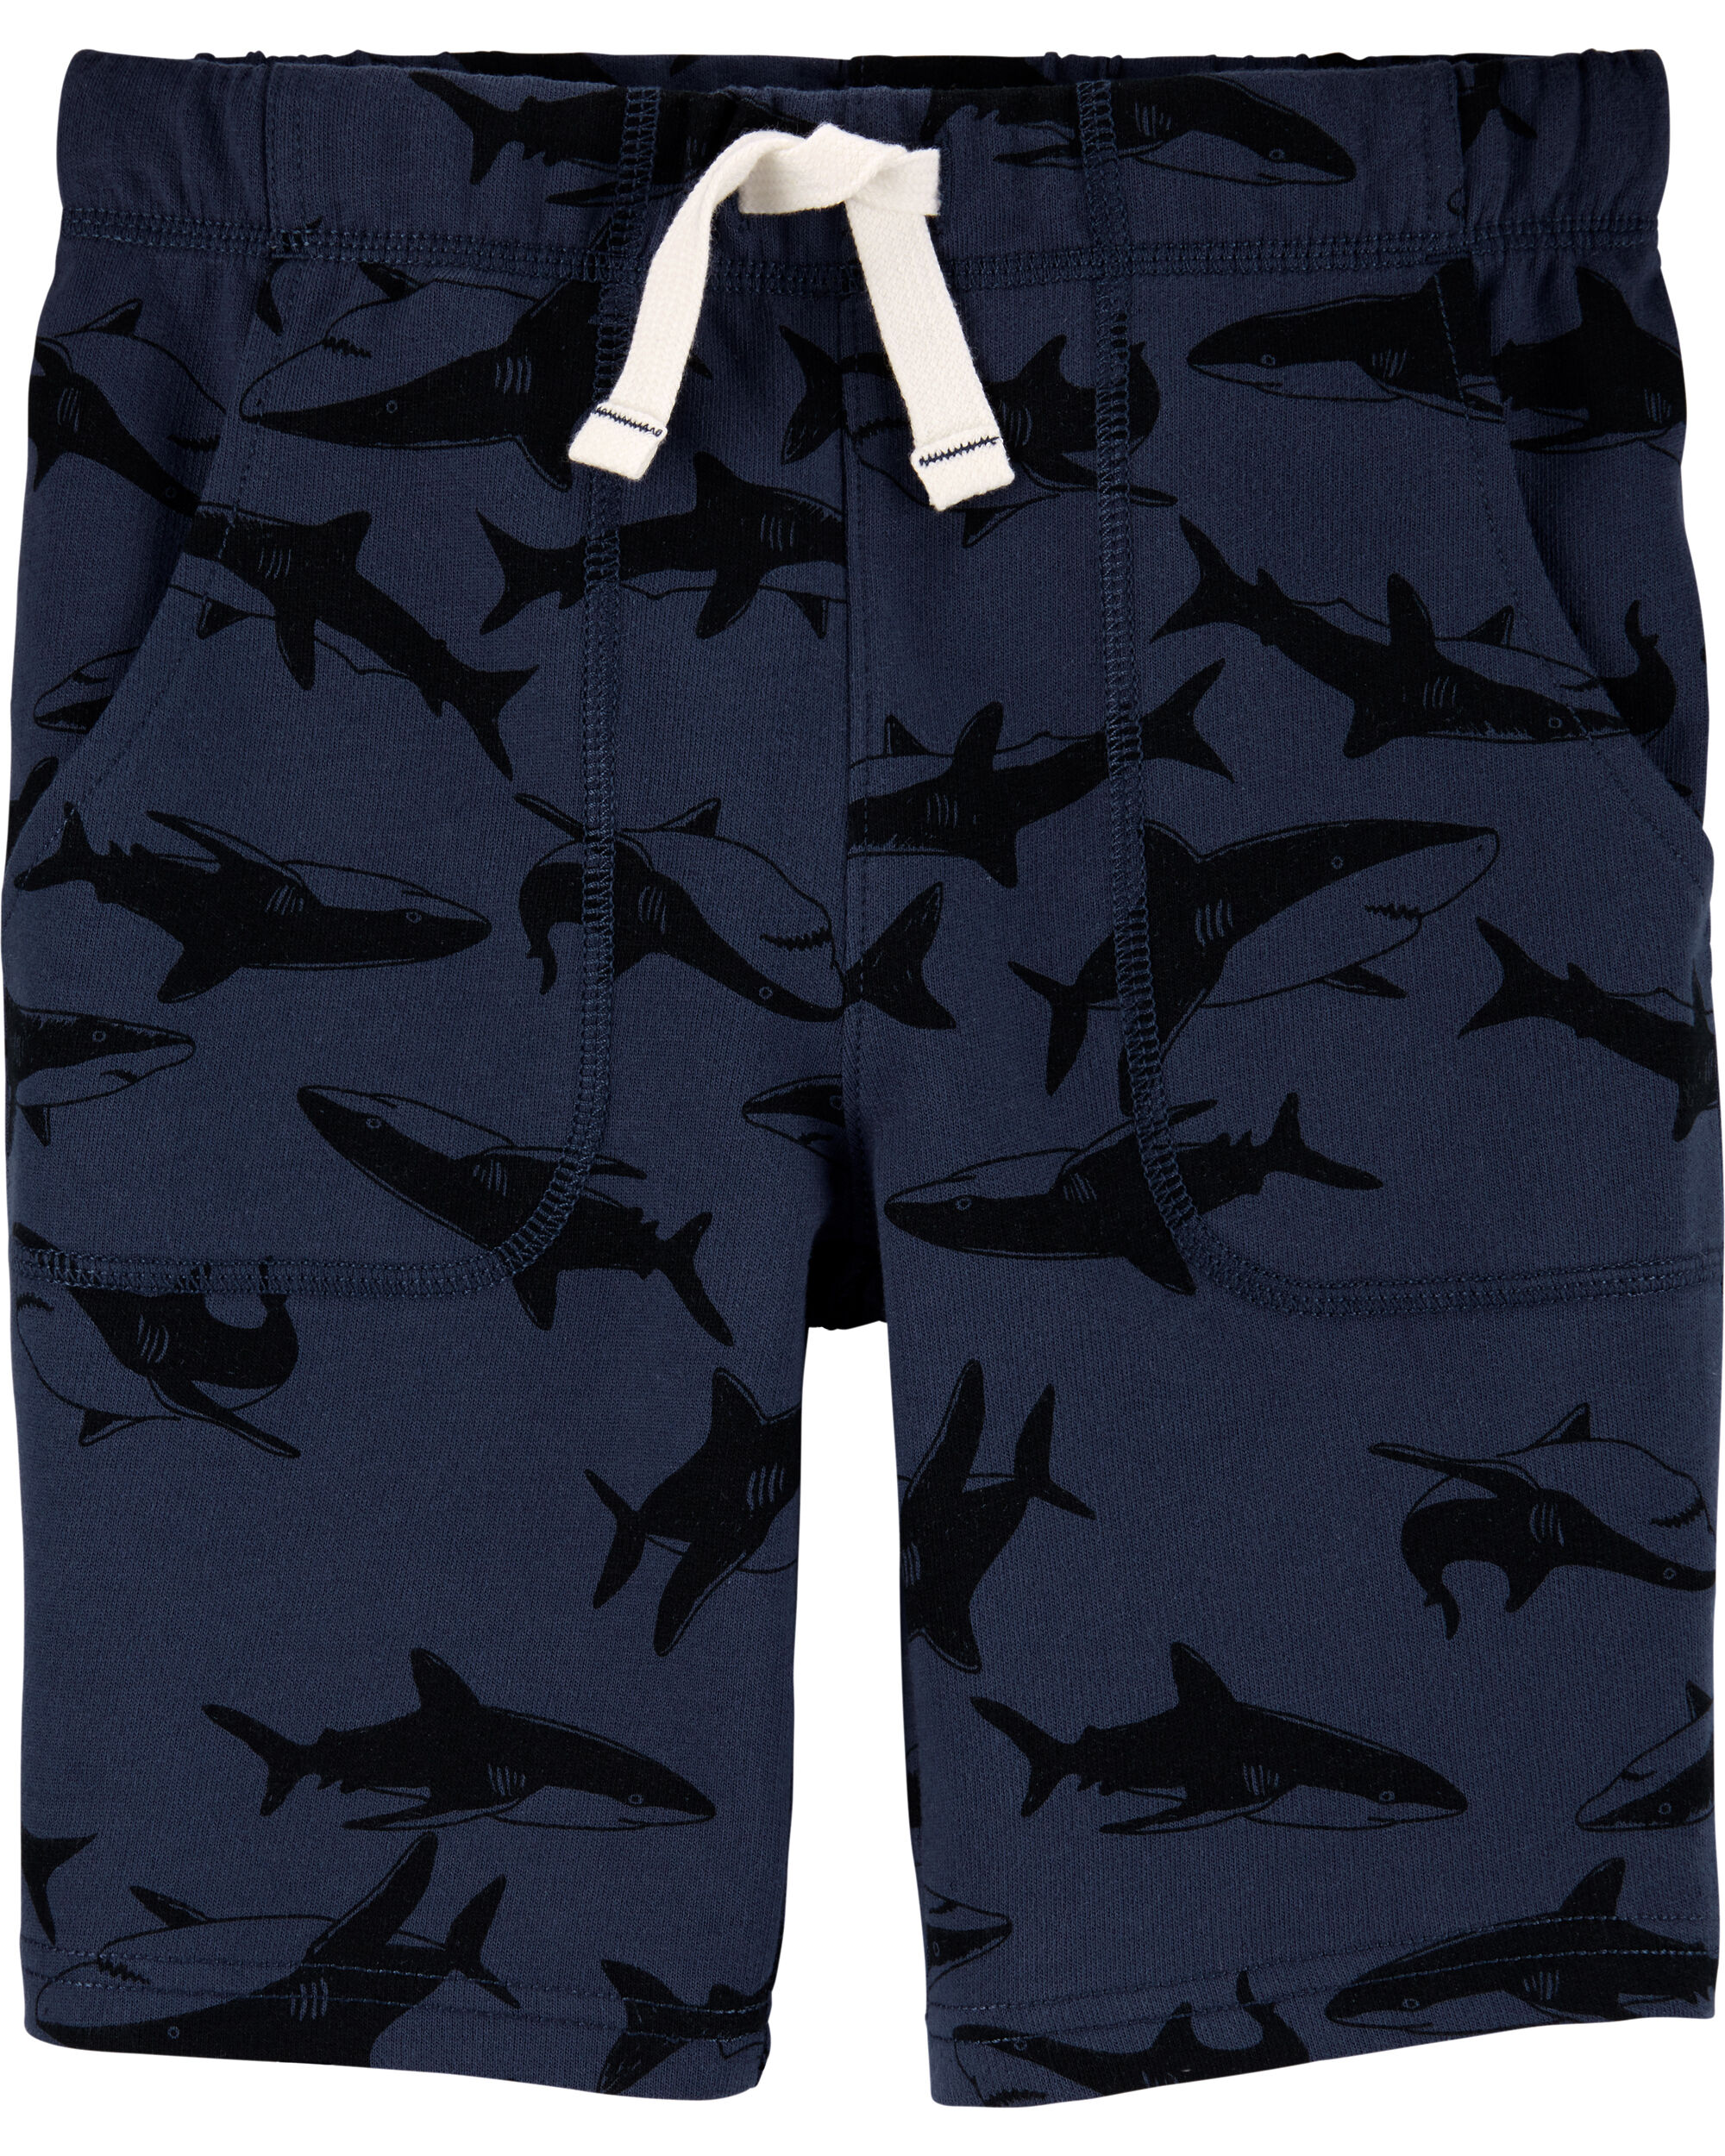 *CLEARANCE* Shark Pull-On French Terry Shorts